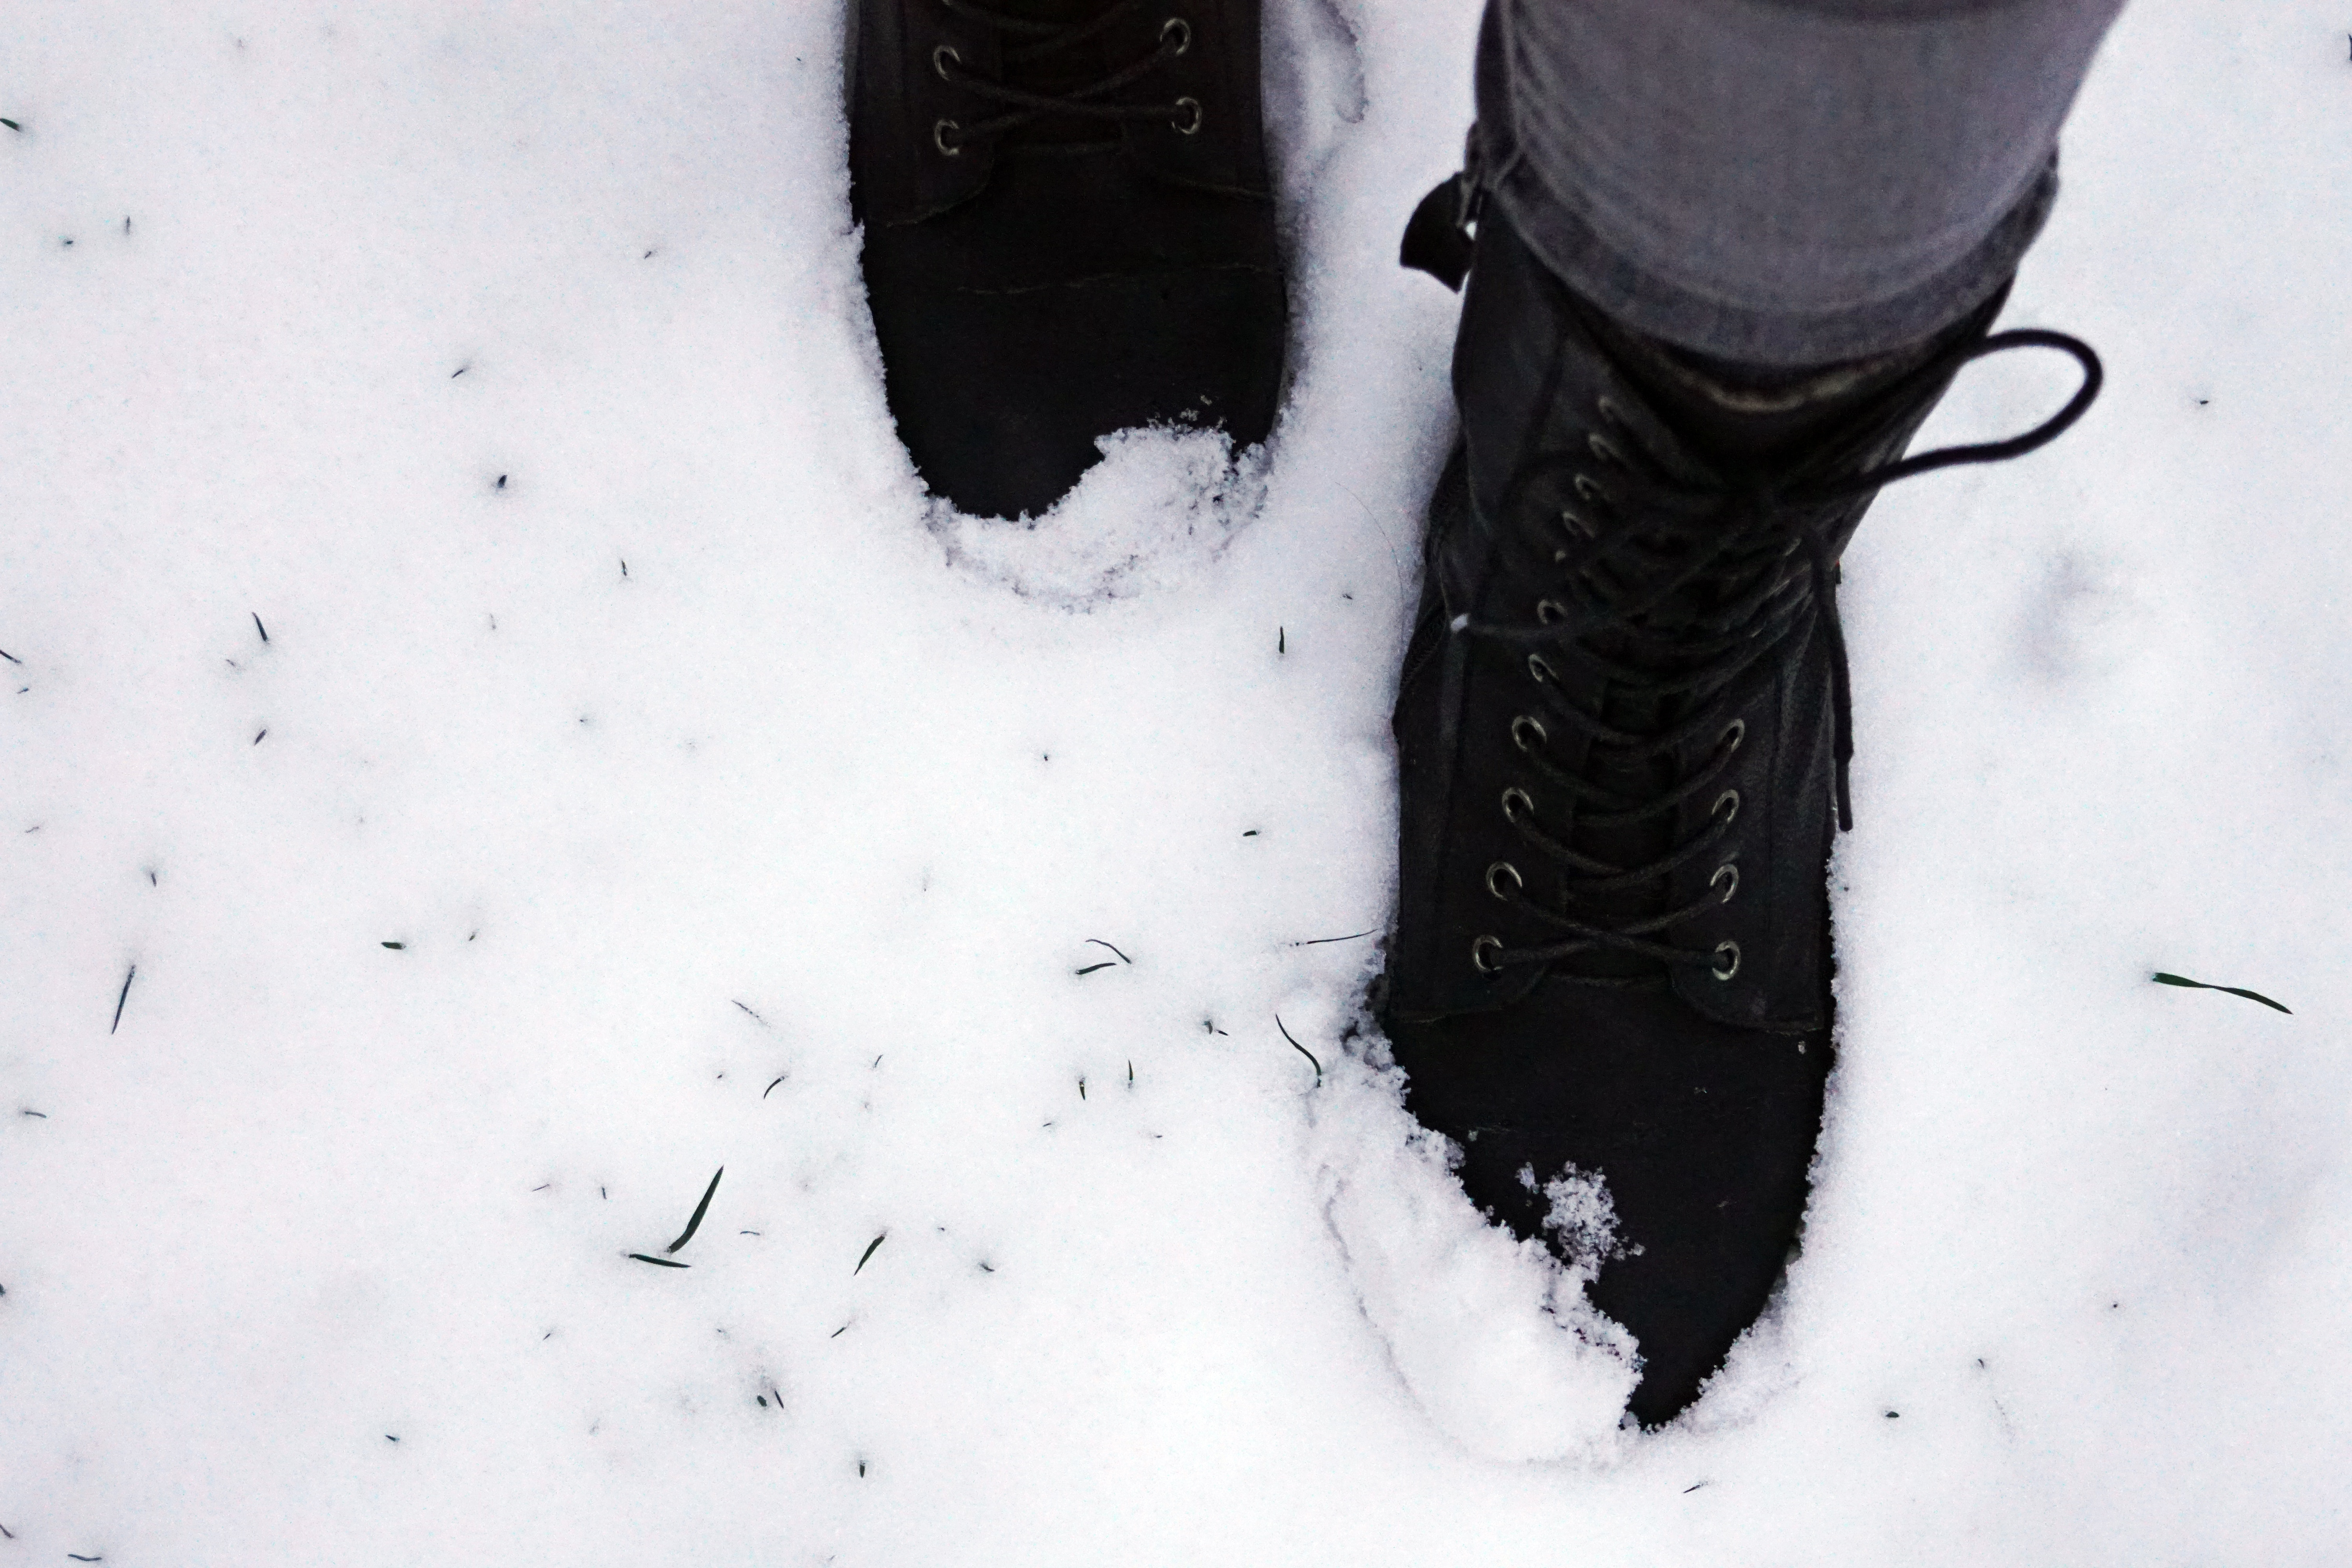 An in-depth review of the best pac boots available in 2019.